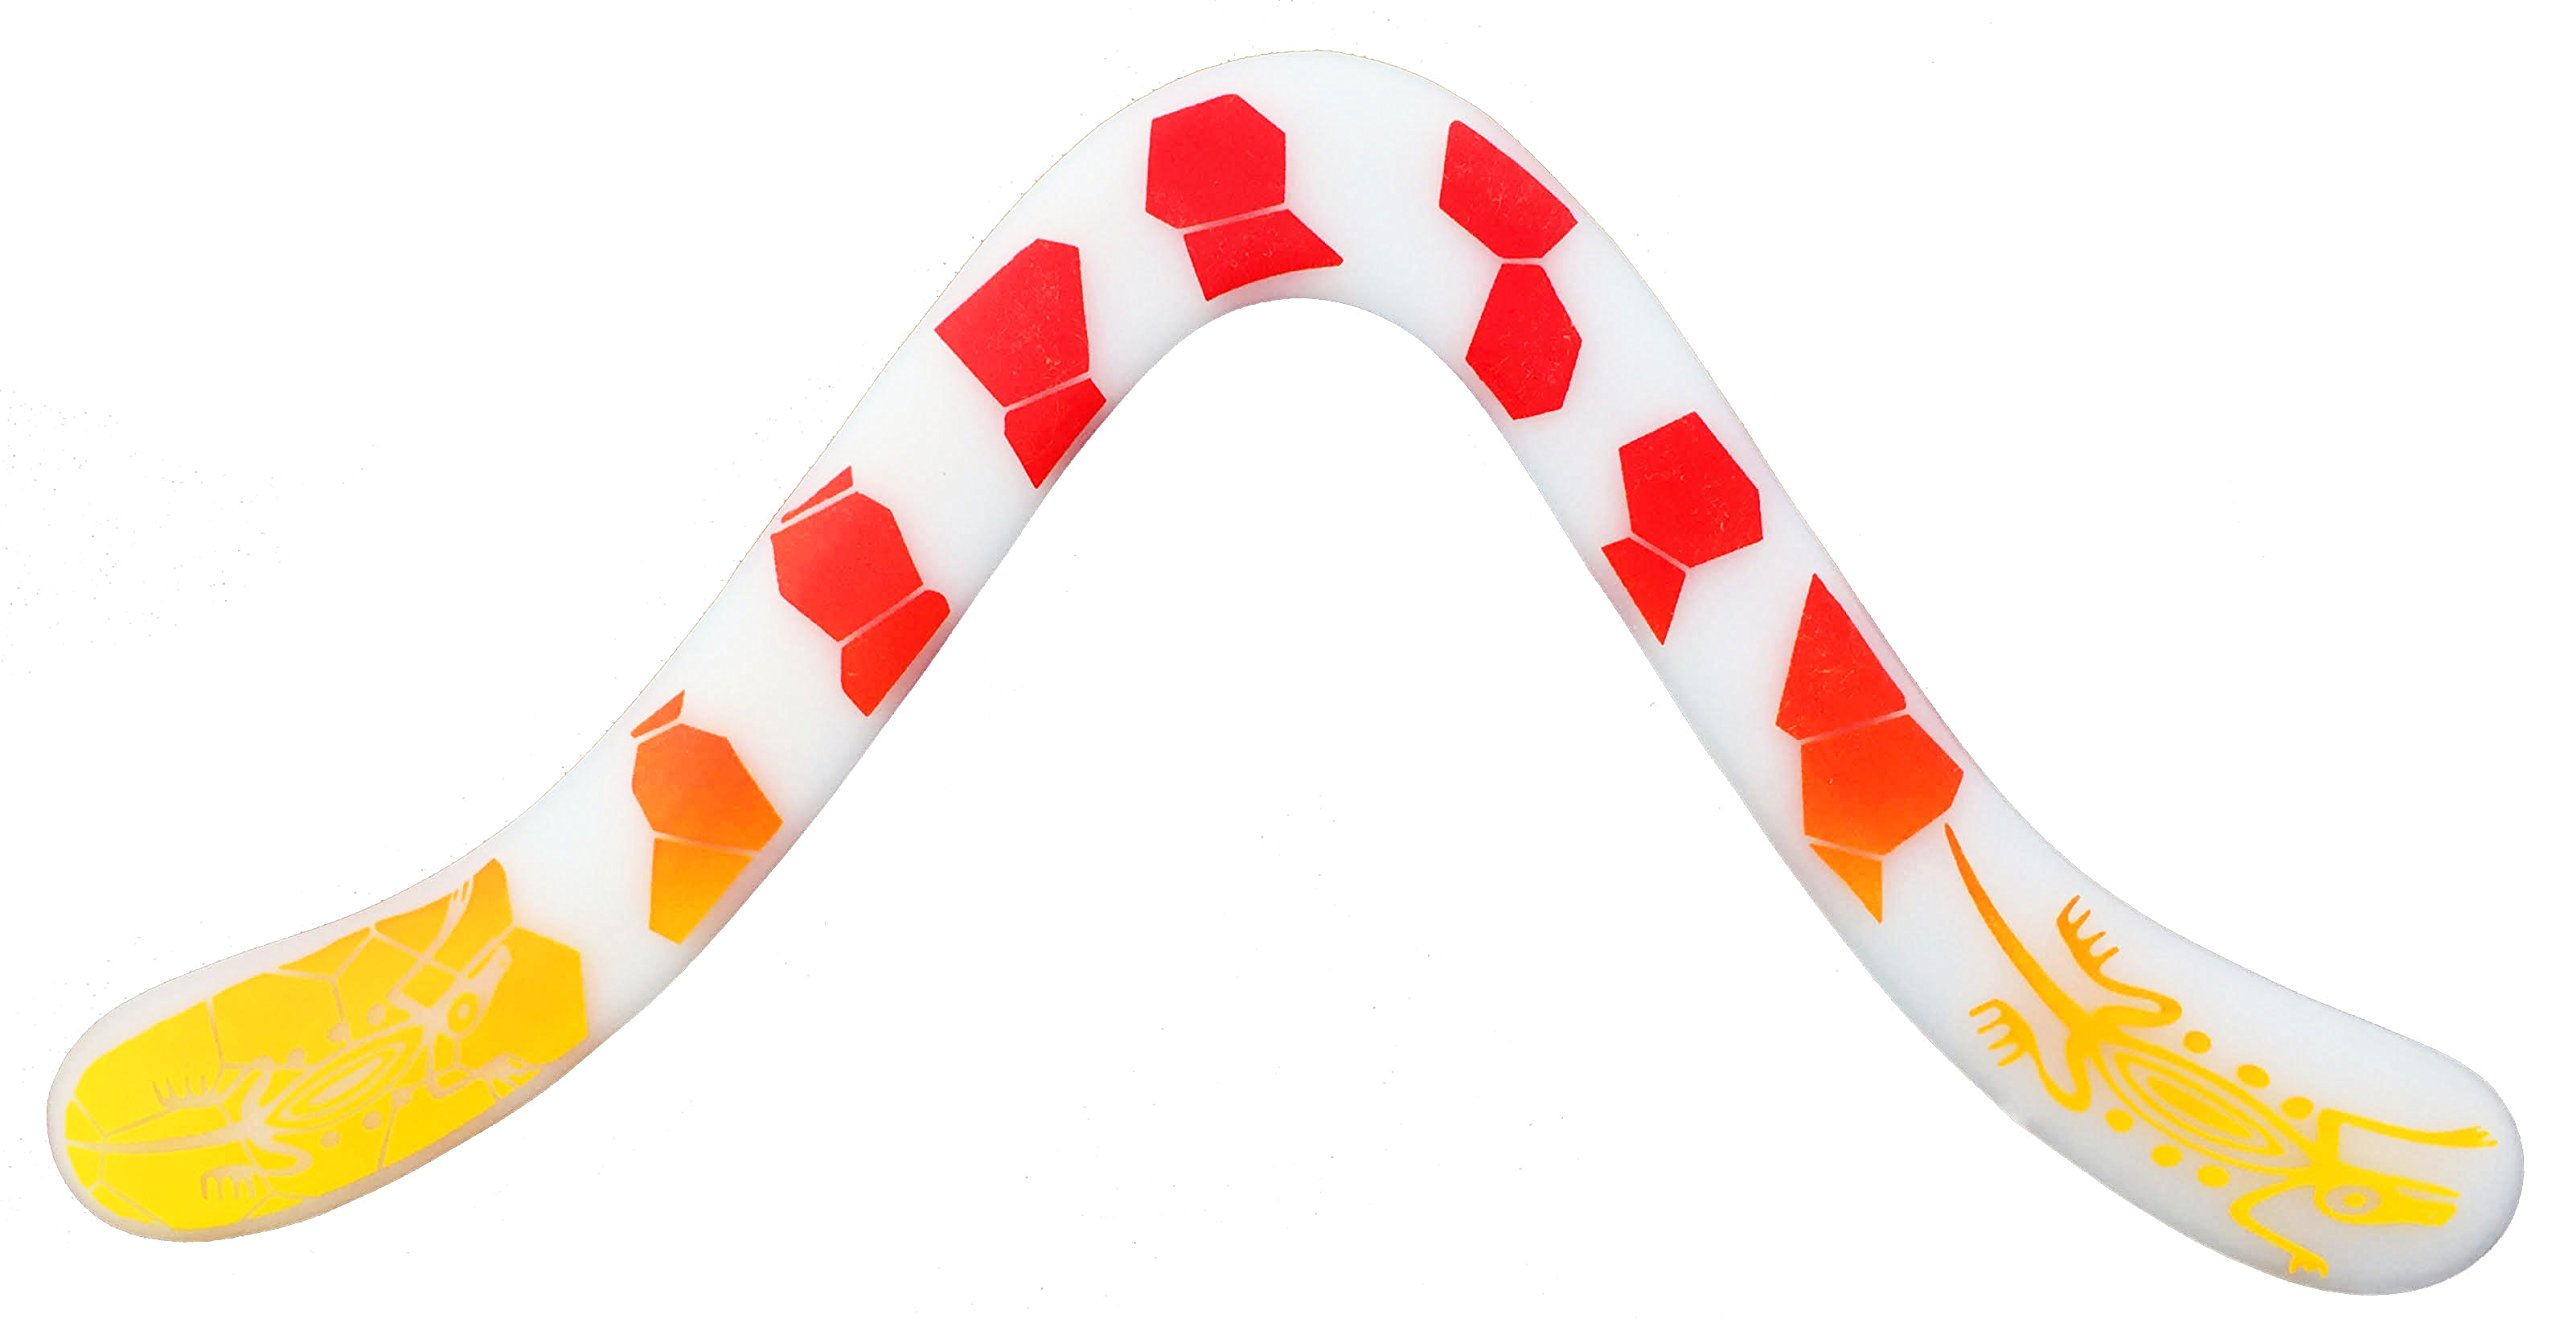 Technic Gecko Decorated Boomerang - Fantastic Beginner Boomerang for Ages Above 8 Years Old. by Colorado Boomerangs